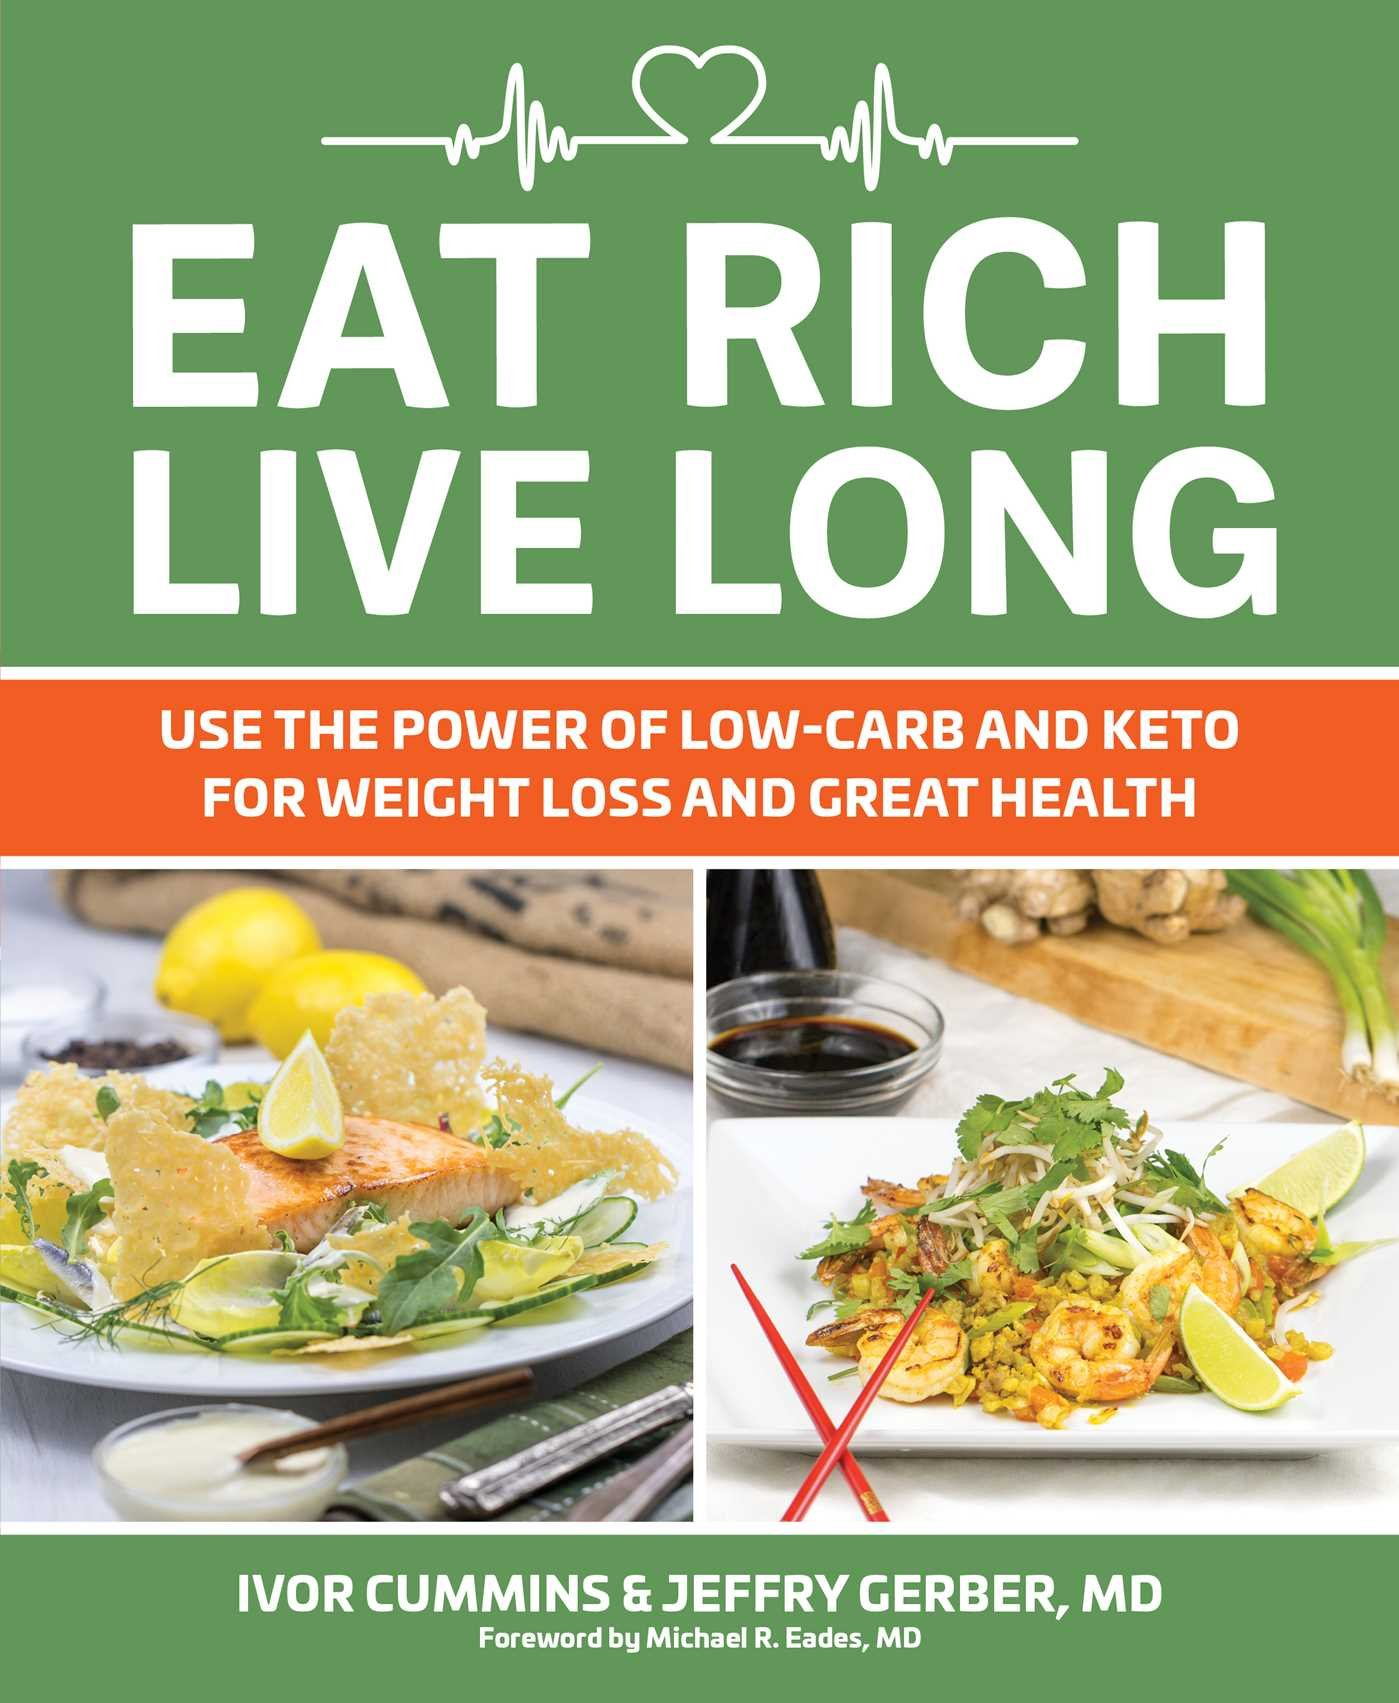 Eat rich, live long. Here are the key rules for optimum health and wellness, according to Dr. Jeffrey Gerber and Ivor Cummins.